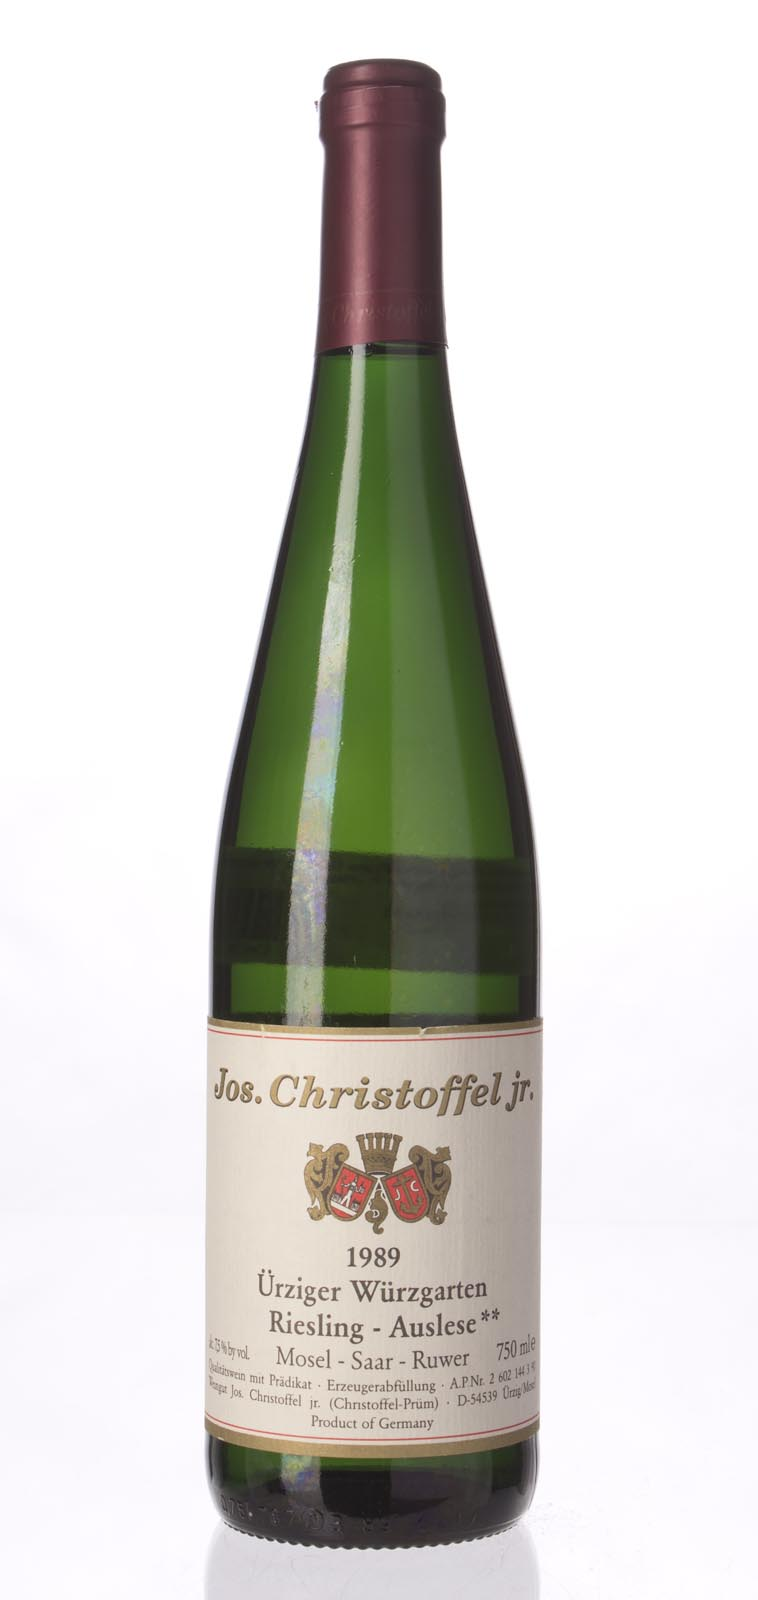 Jos. Christoffel Jun (Christoffel Prum) Urziger Wurzgarten Riesling Auslese** 1989, 750mL () from The BPW - Merchants of rare and fine wines.